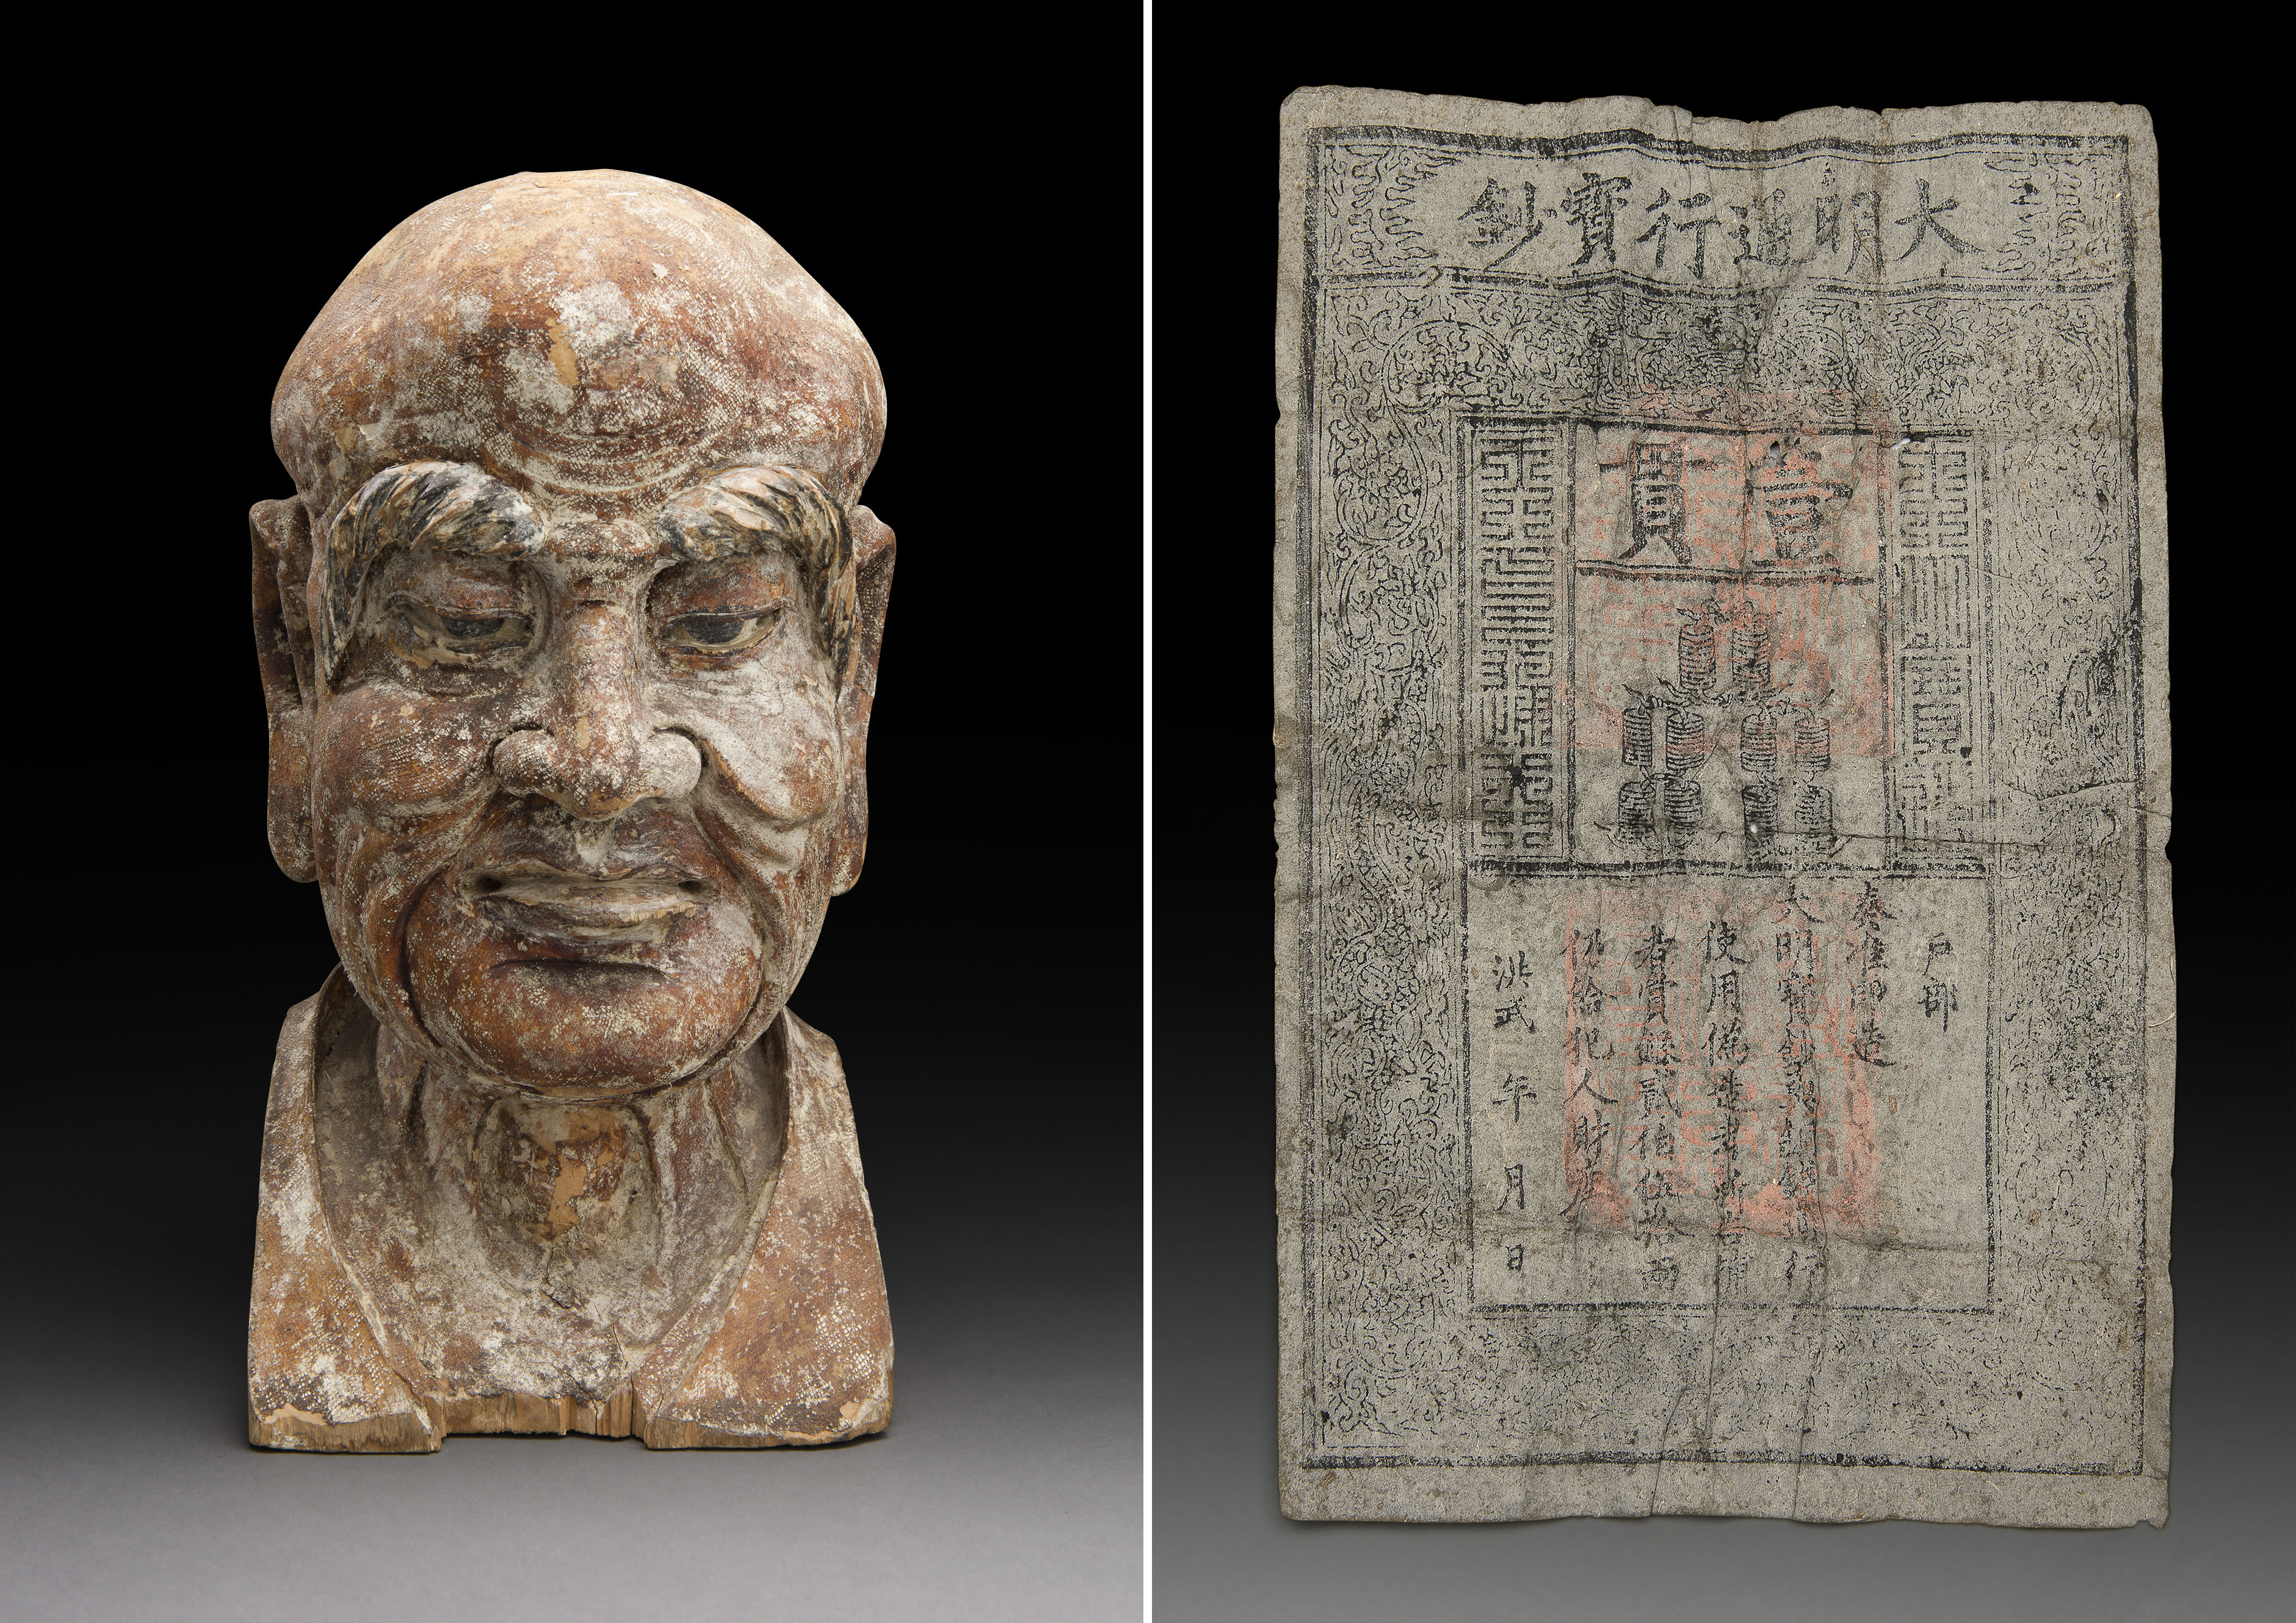 Ming Dynasty Banknote Found in Sculpture, Record Price for Nike Sneakers, and More Fresh News